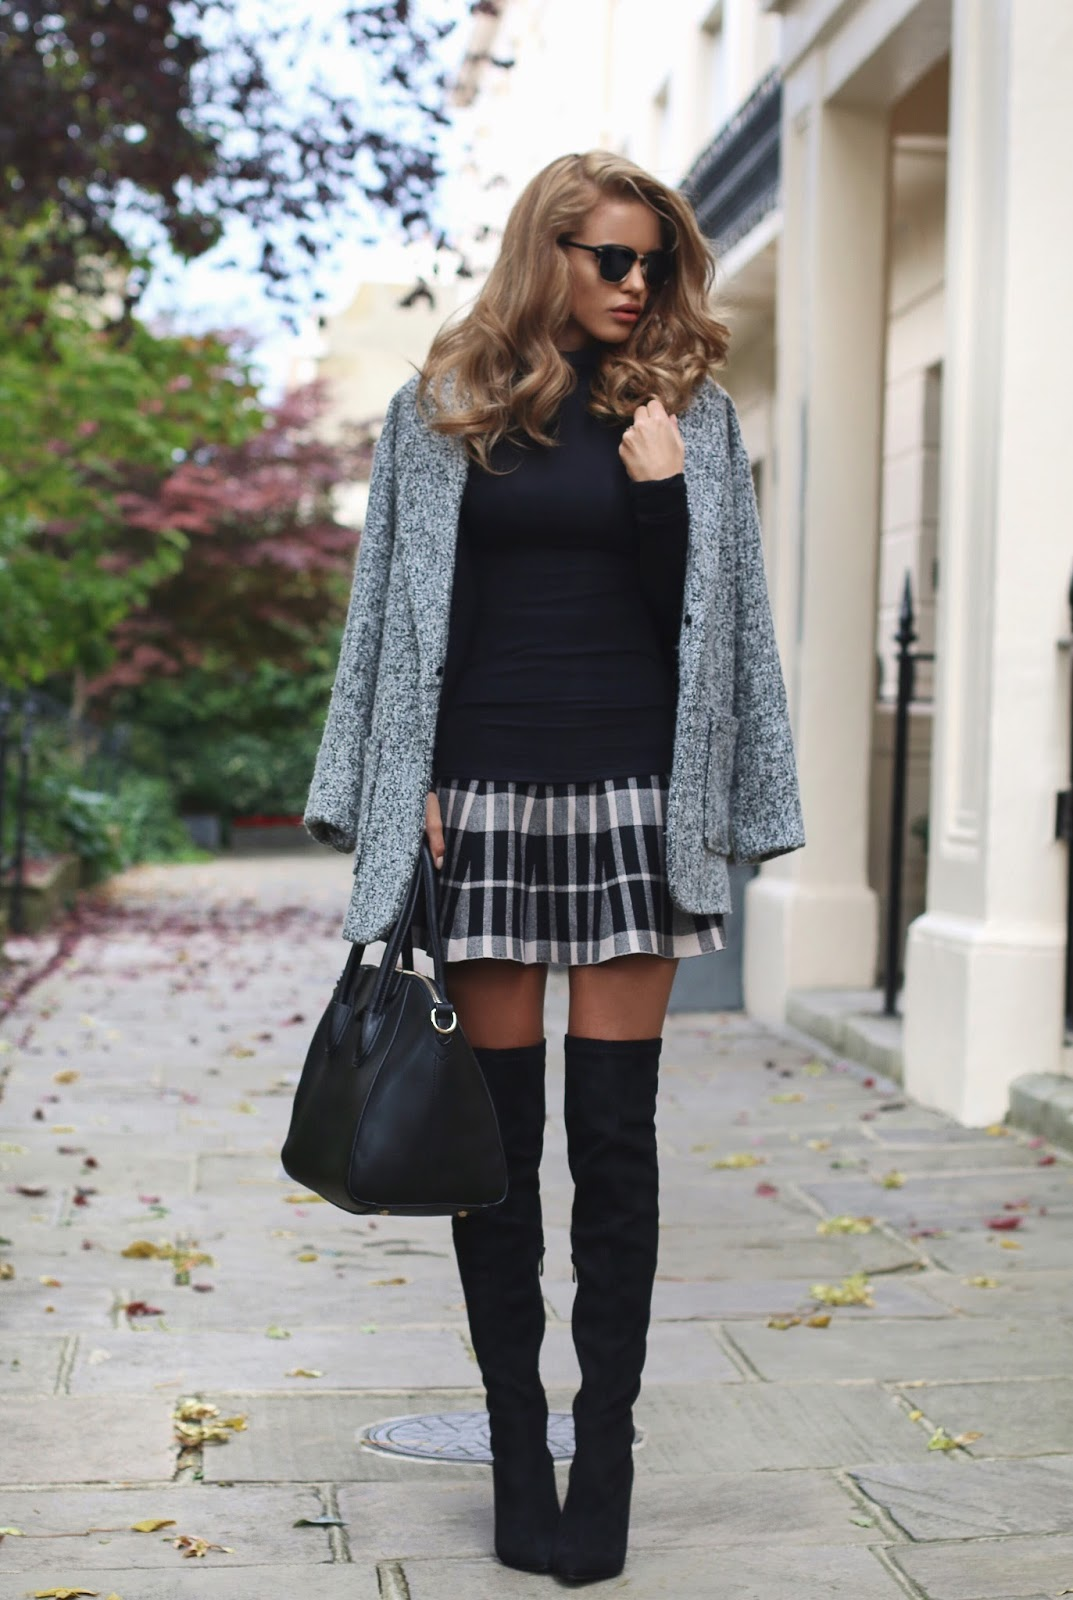 nada adelle wears patent over the knee boots with a cute tartan mini skirt EANDBZS